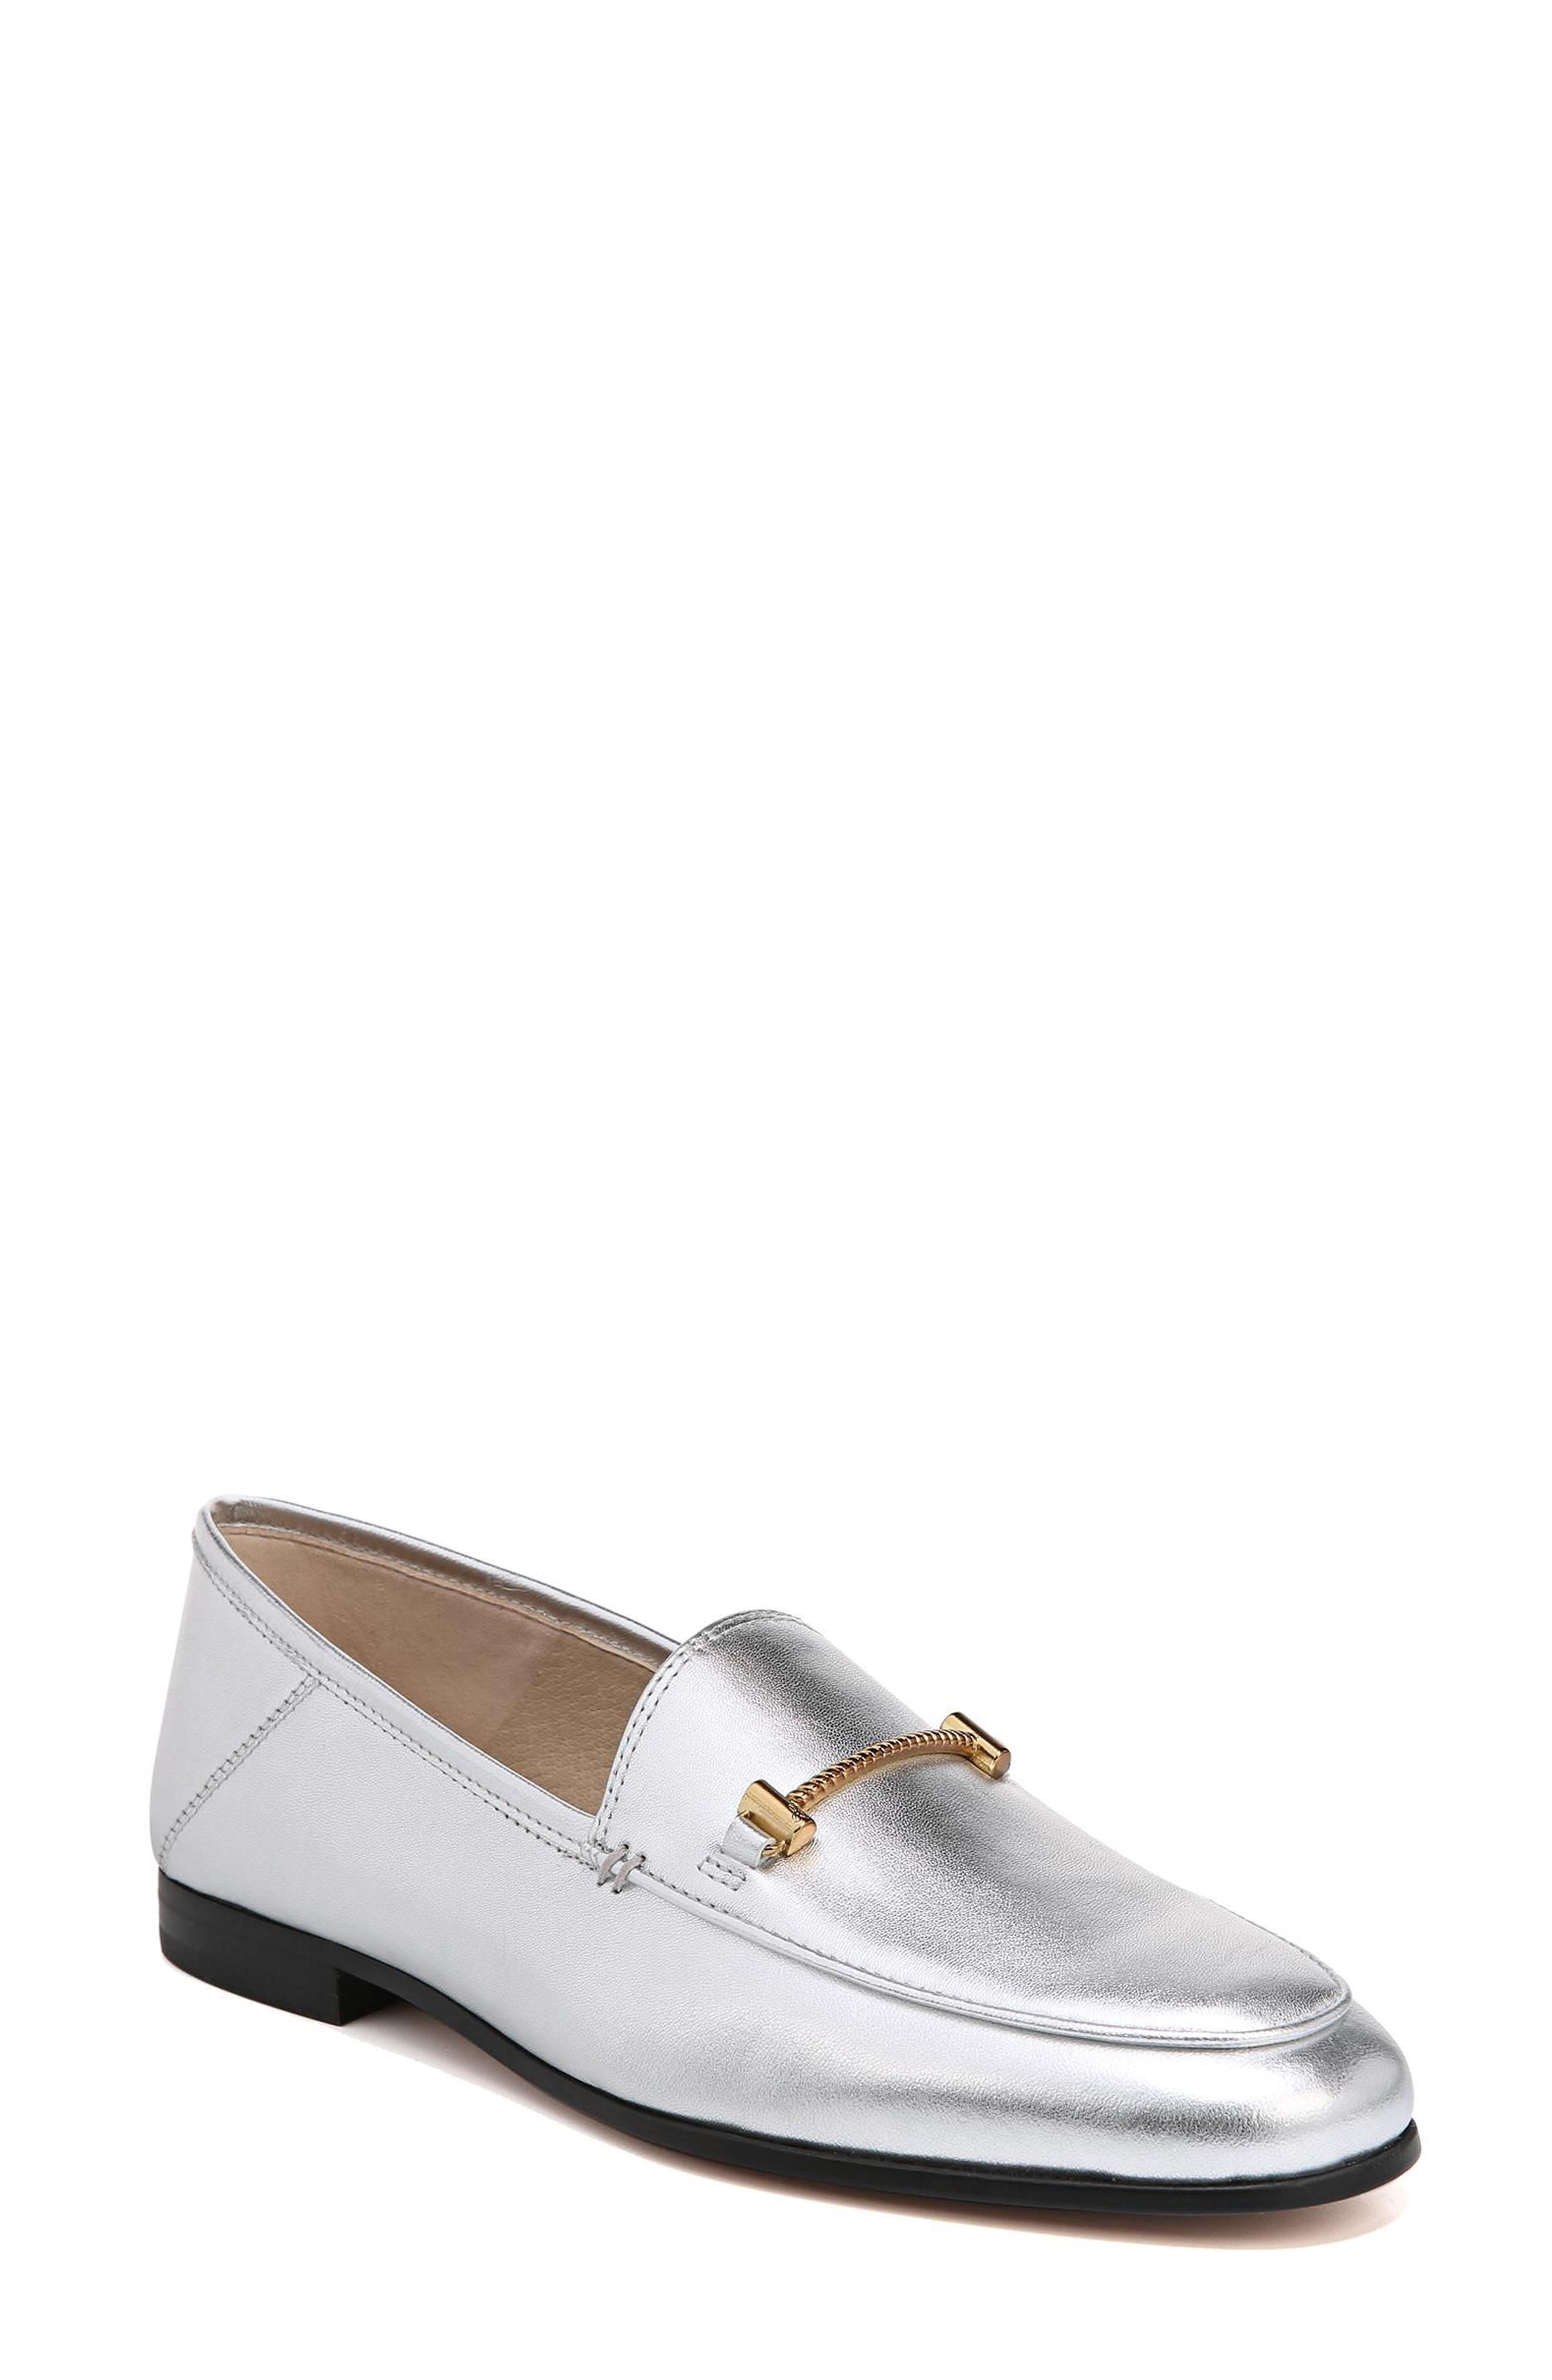 Lior Loafer,                         Main,                         color, SOFT SILVER METALLIC LEATHER